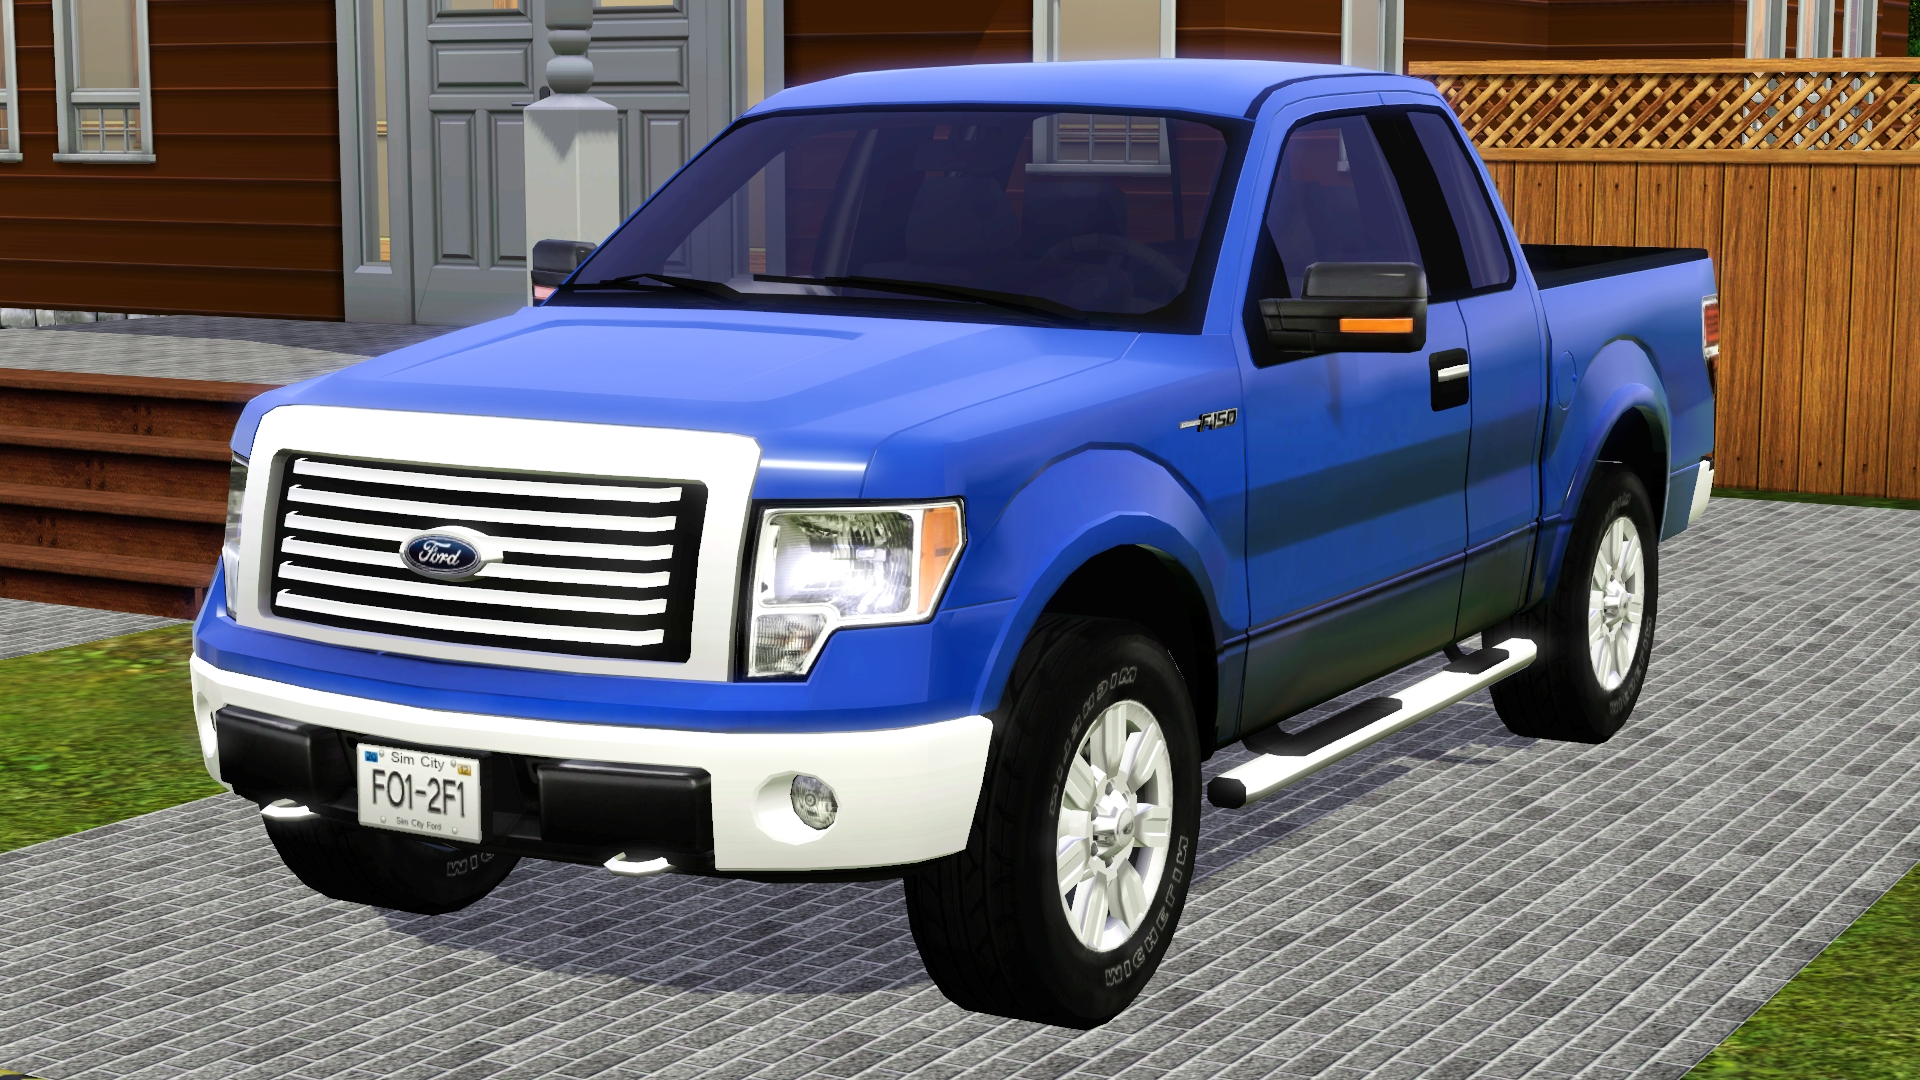 2012 Ford F-150 SuperCab by Fresh-Prince